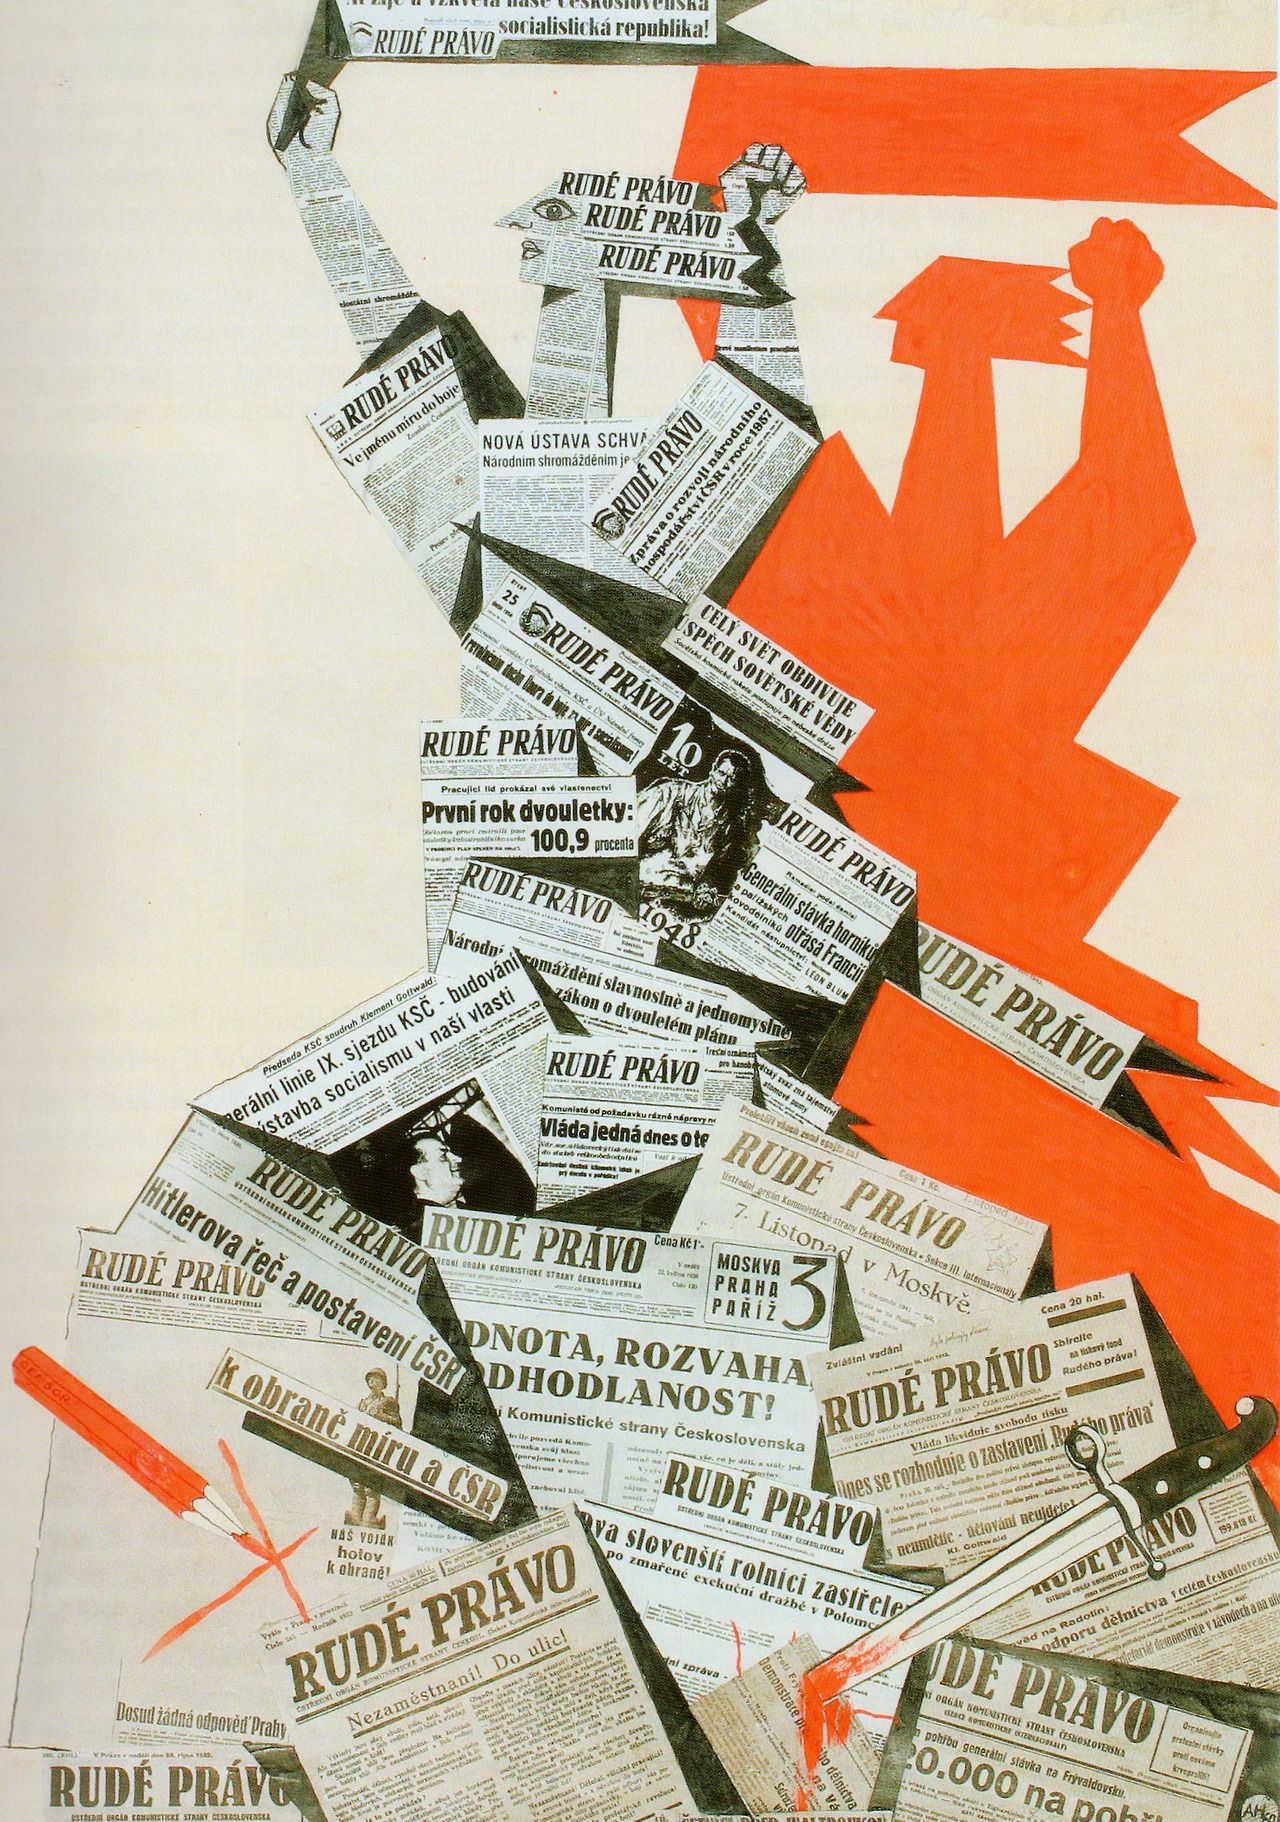 Communist propaganda poster designed in the 1950s by Adolf Hoffmeister, member of the Czech avant-garde and a prominent member of the Czechoslovak Communist Party.